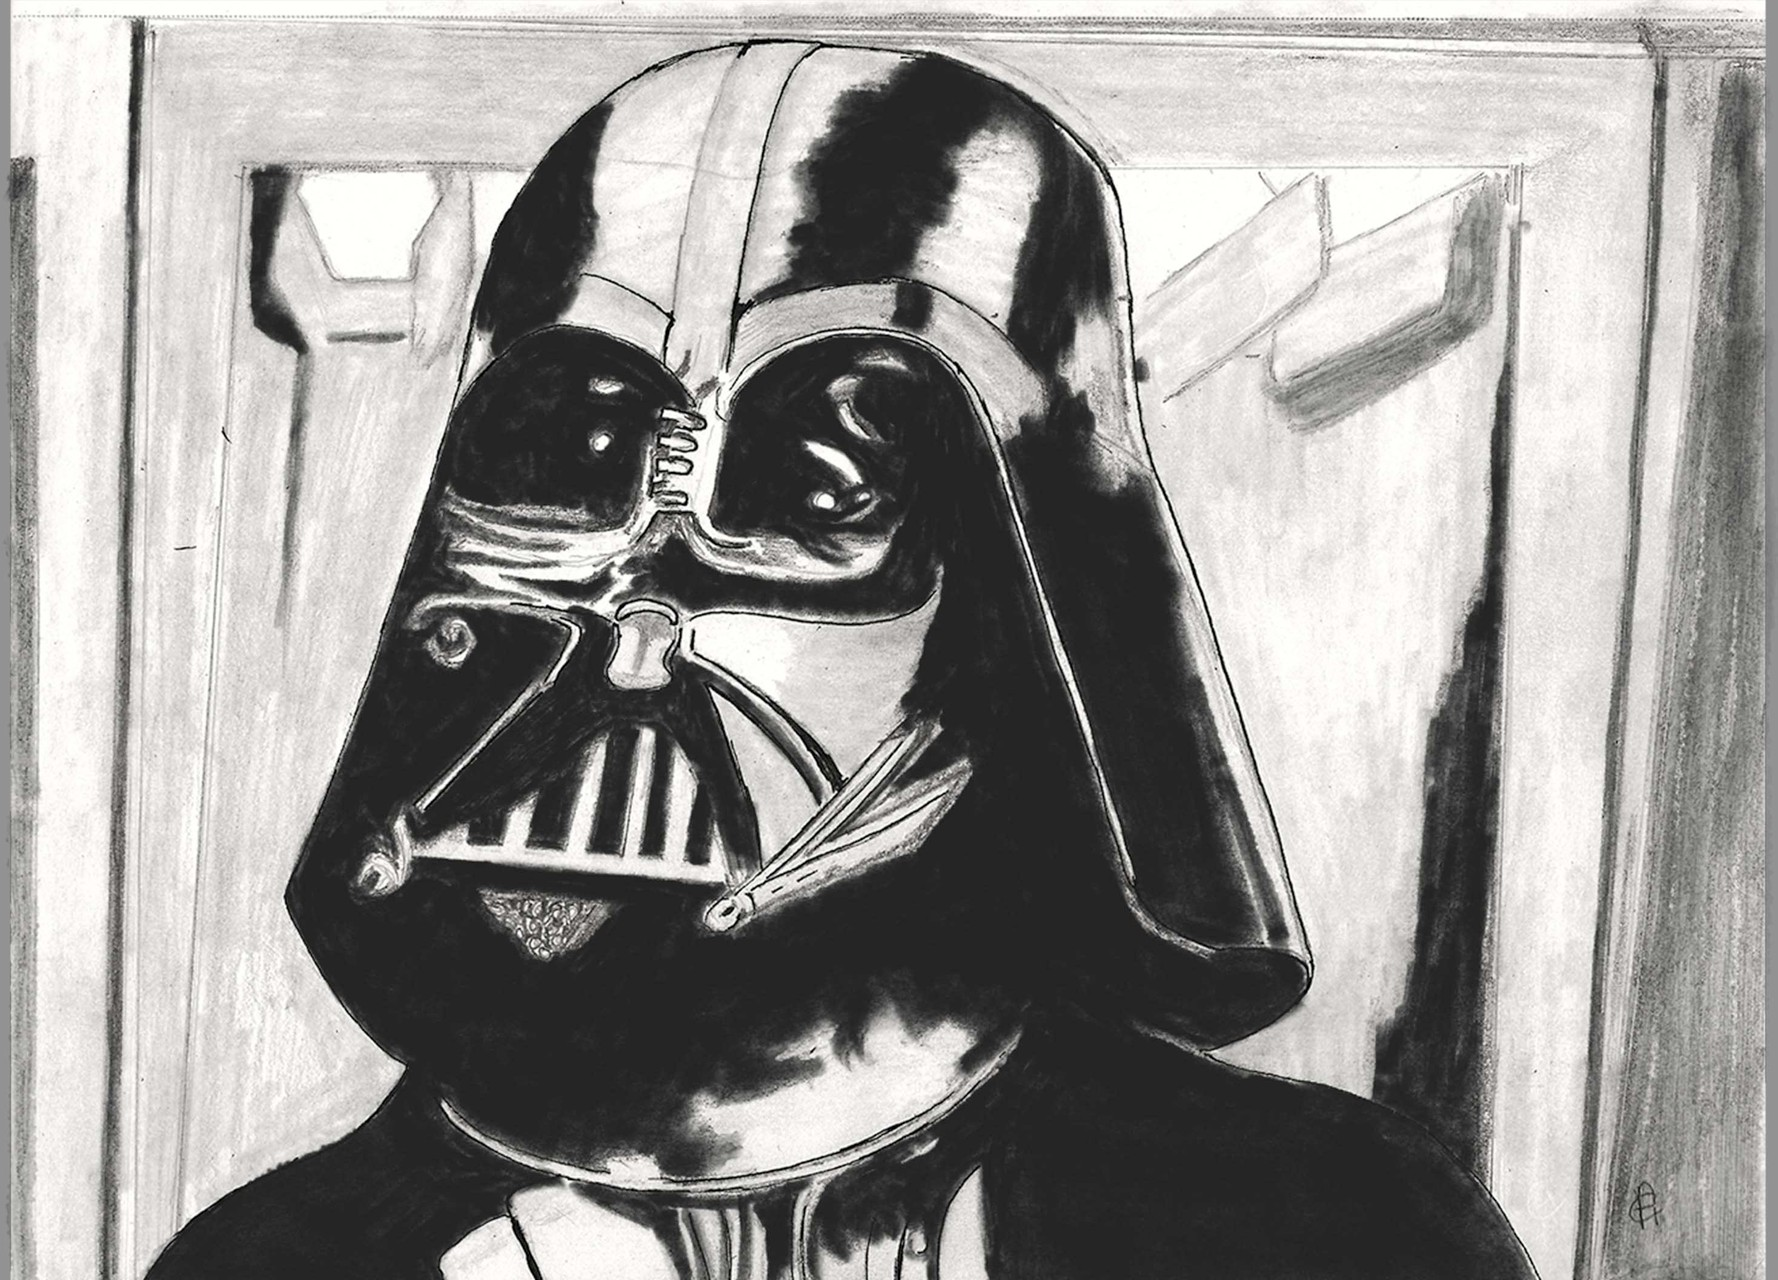 2 of 3 Star Wars traditional illustration of Darth Vader in a close up shot. This illustration was drawn in graphite pencils, ink, mechanical pencil, and later digitally enhanced in Photoshop. Created 1/15.